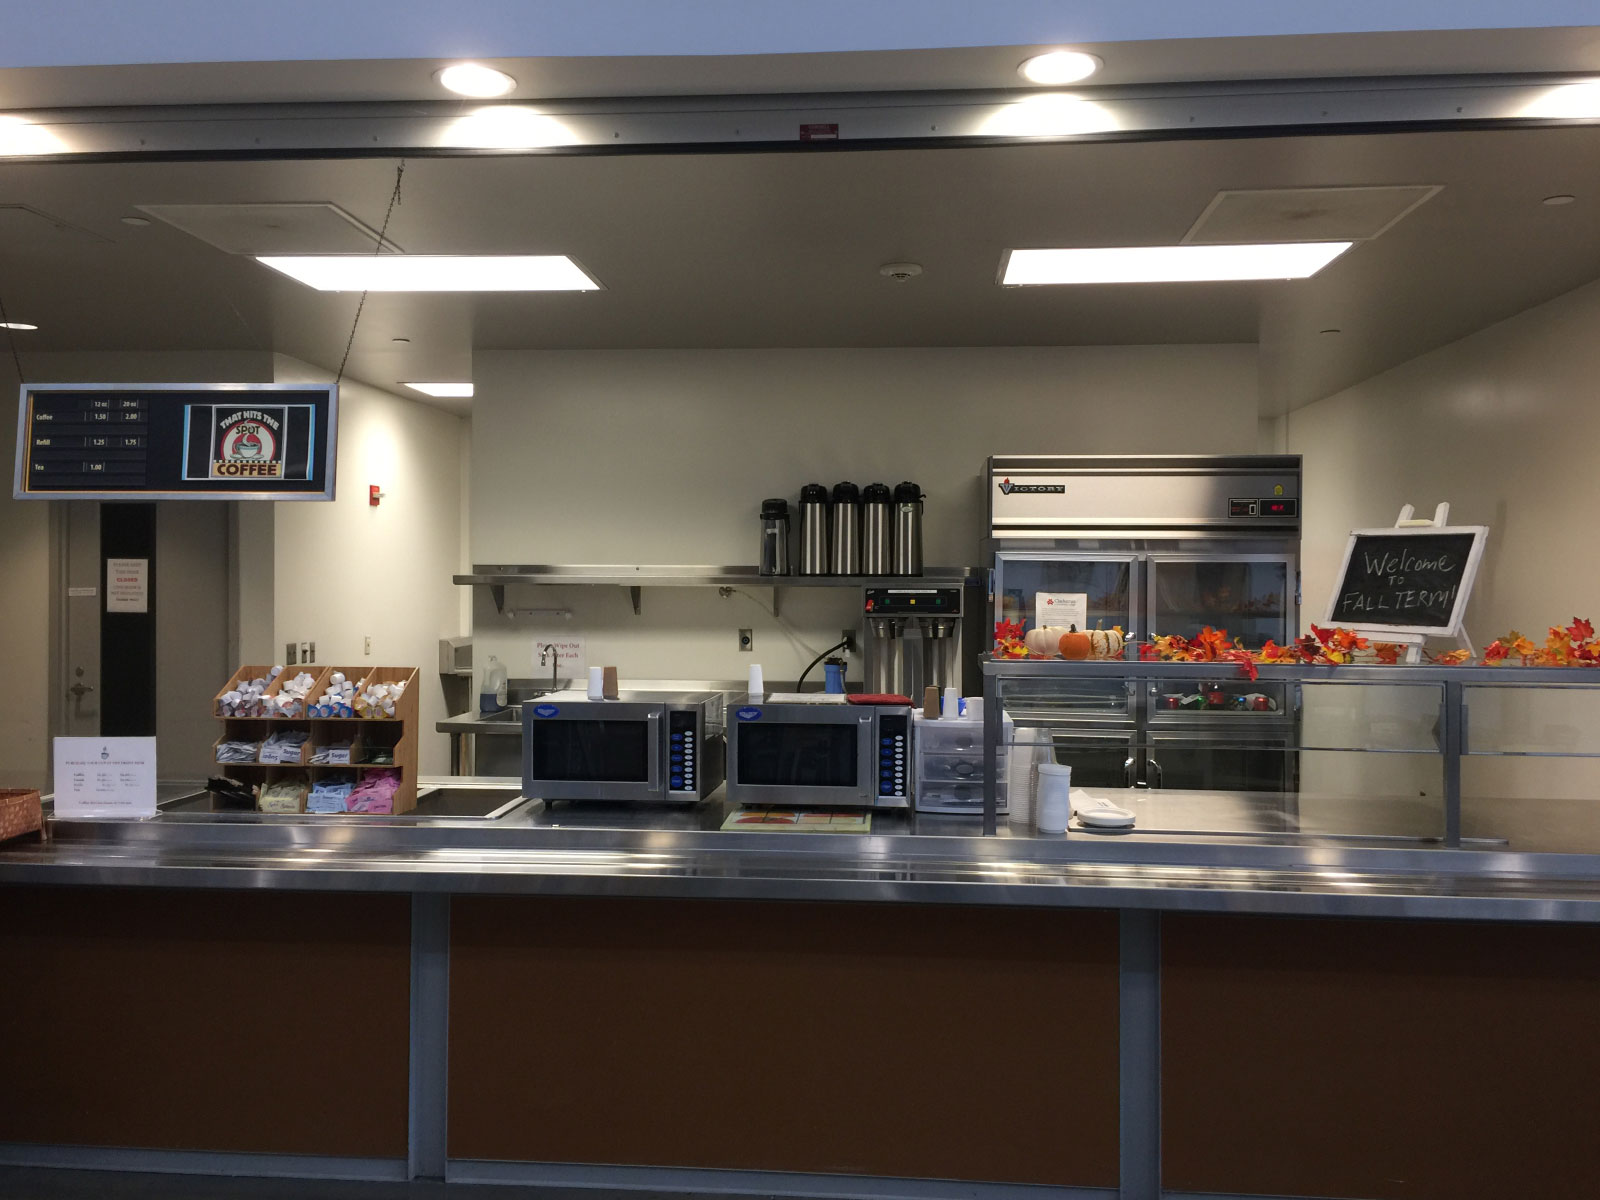 The front of the kitchen area with microwaves, refridgerator, counter and displays of the Wilsonville campus